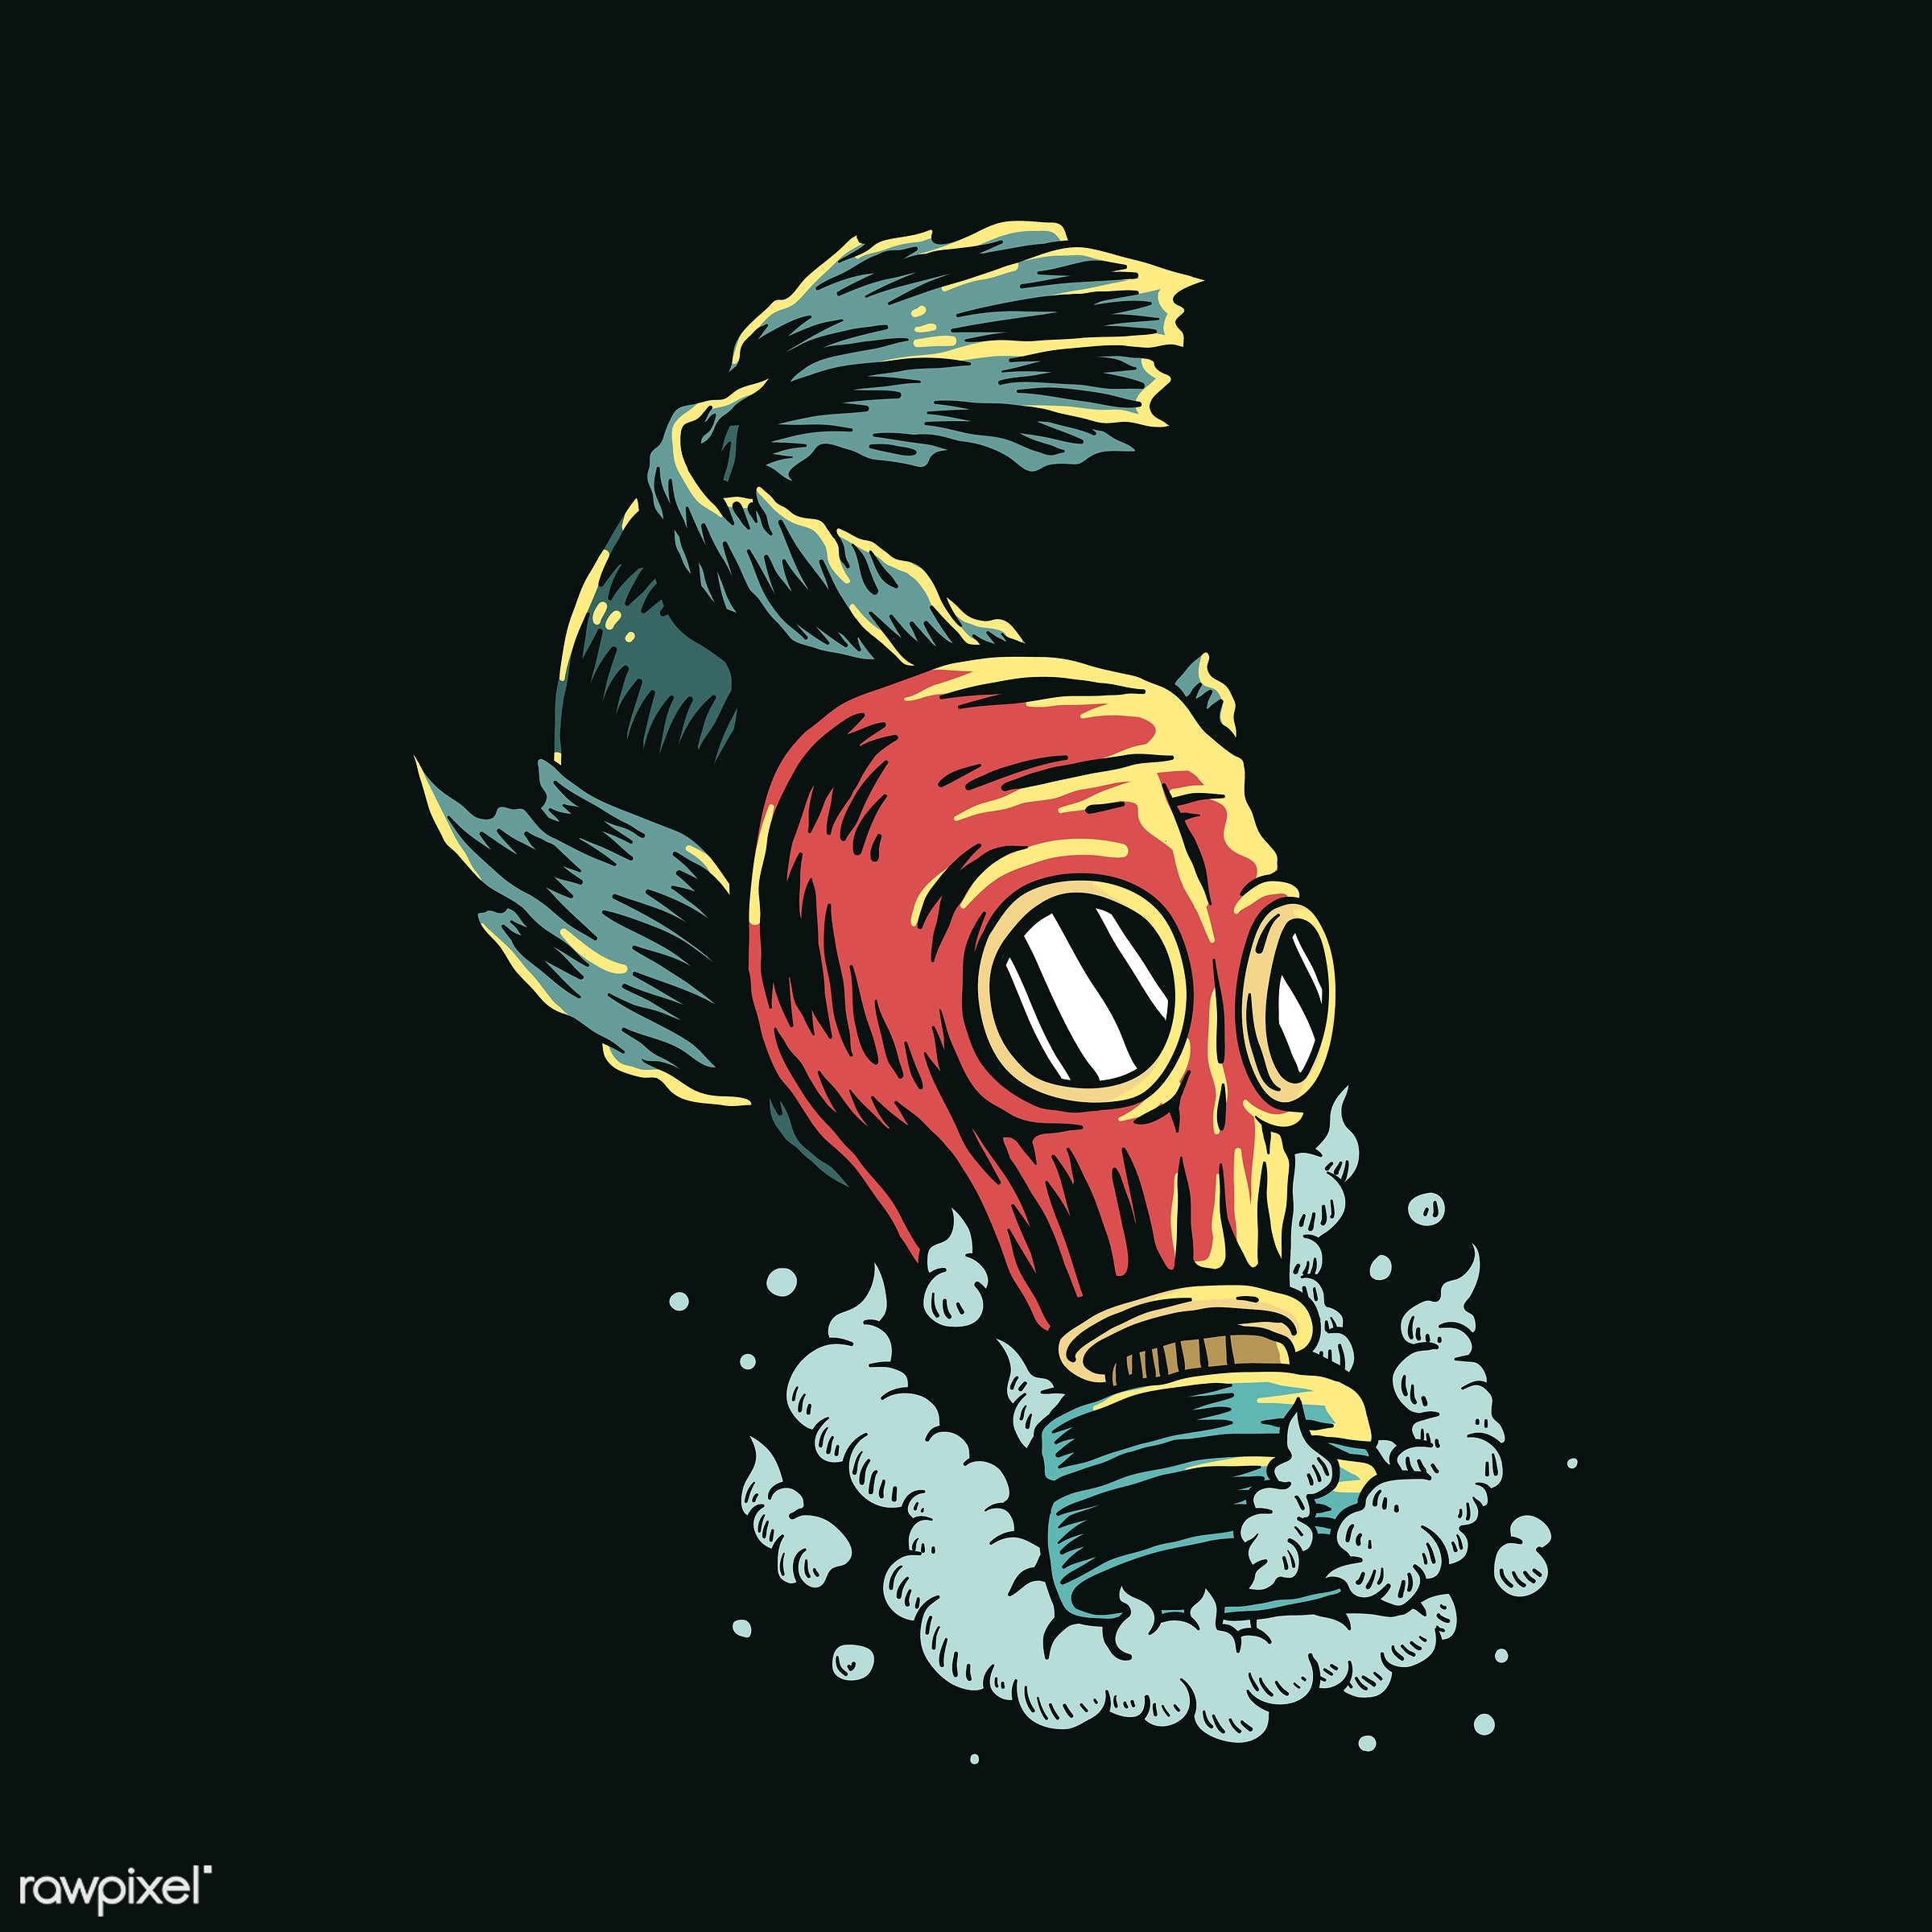 Fish wearing gas mask in polluted water illustration - ID: 454334